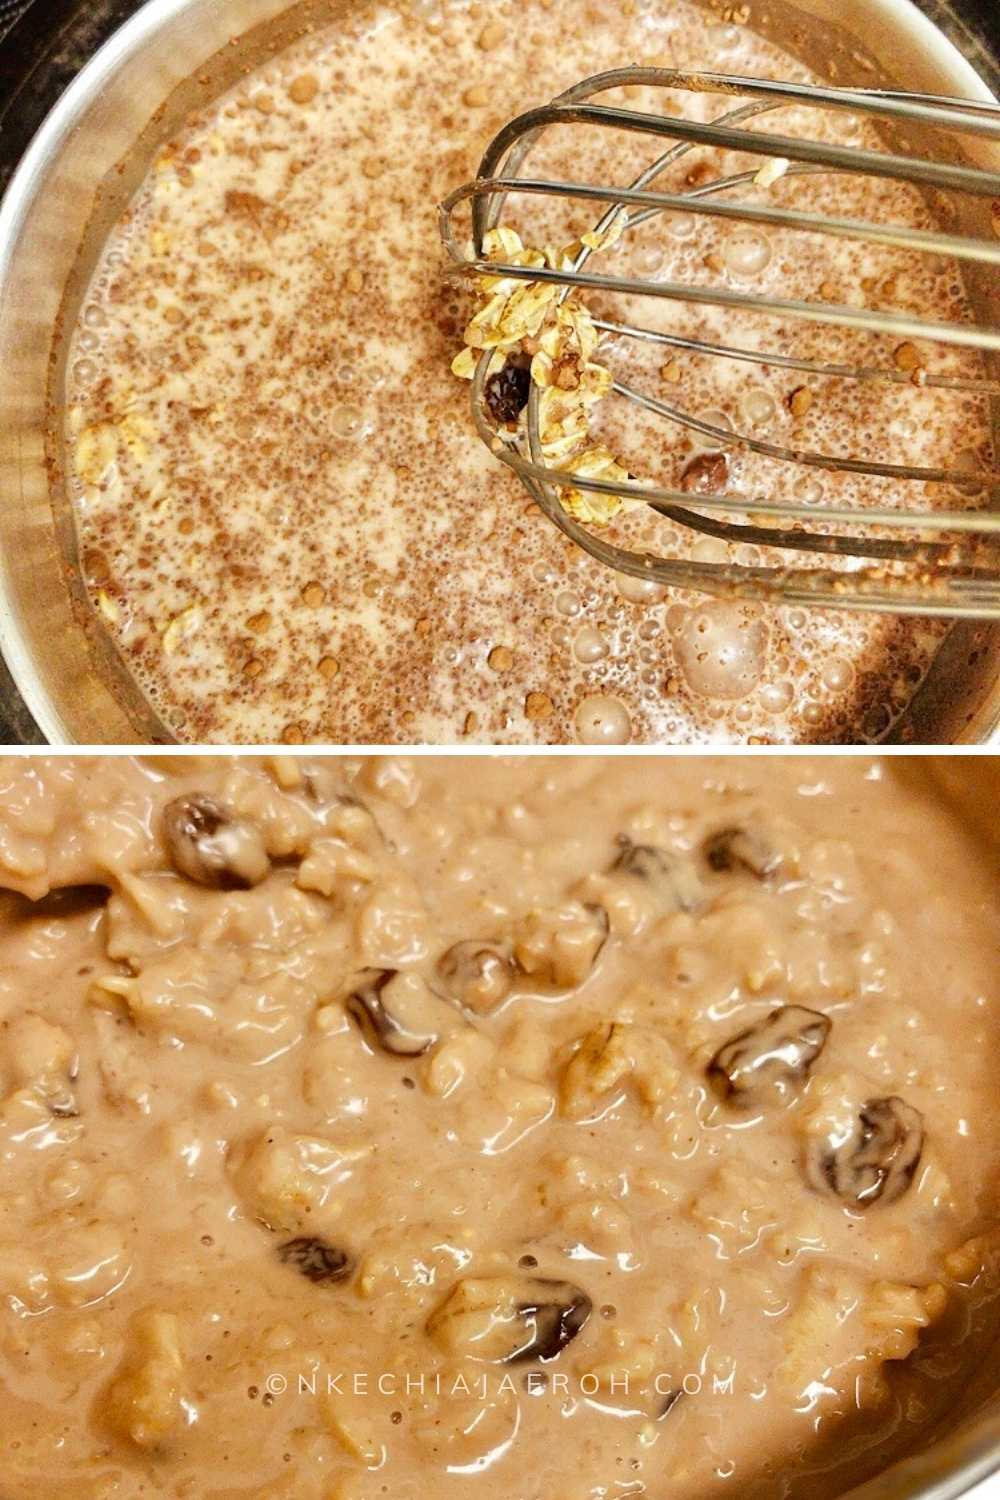 Cook the oat porridge to your desired consistency, I like mine really soft, creamy and light, not think very thick.